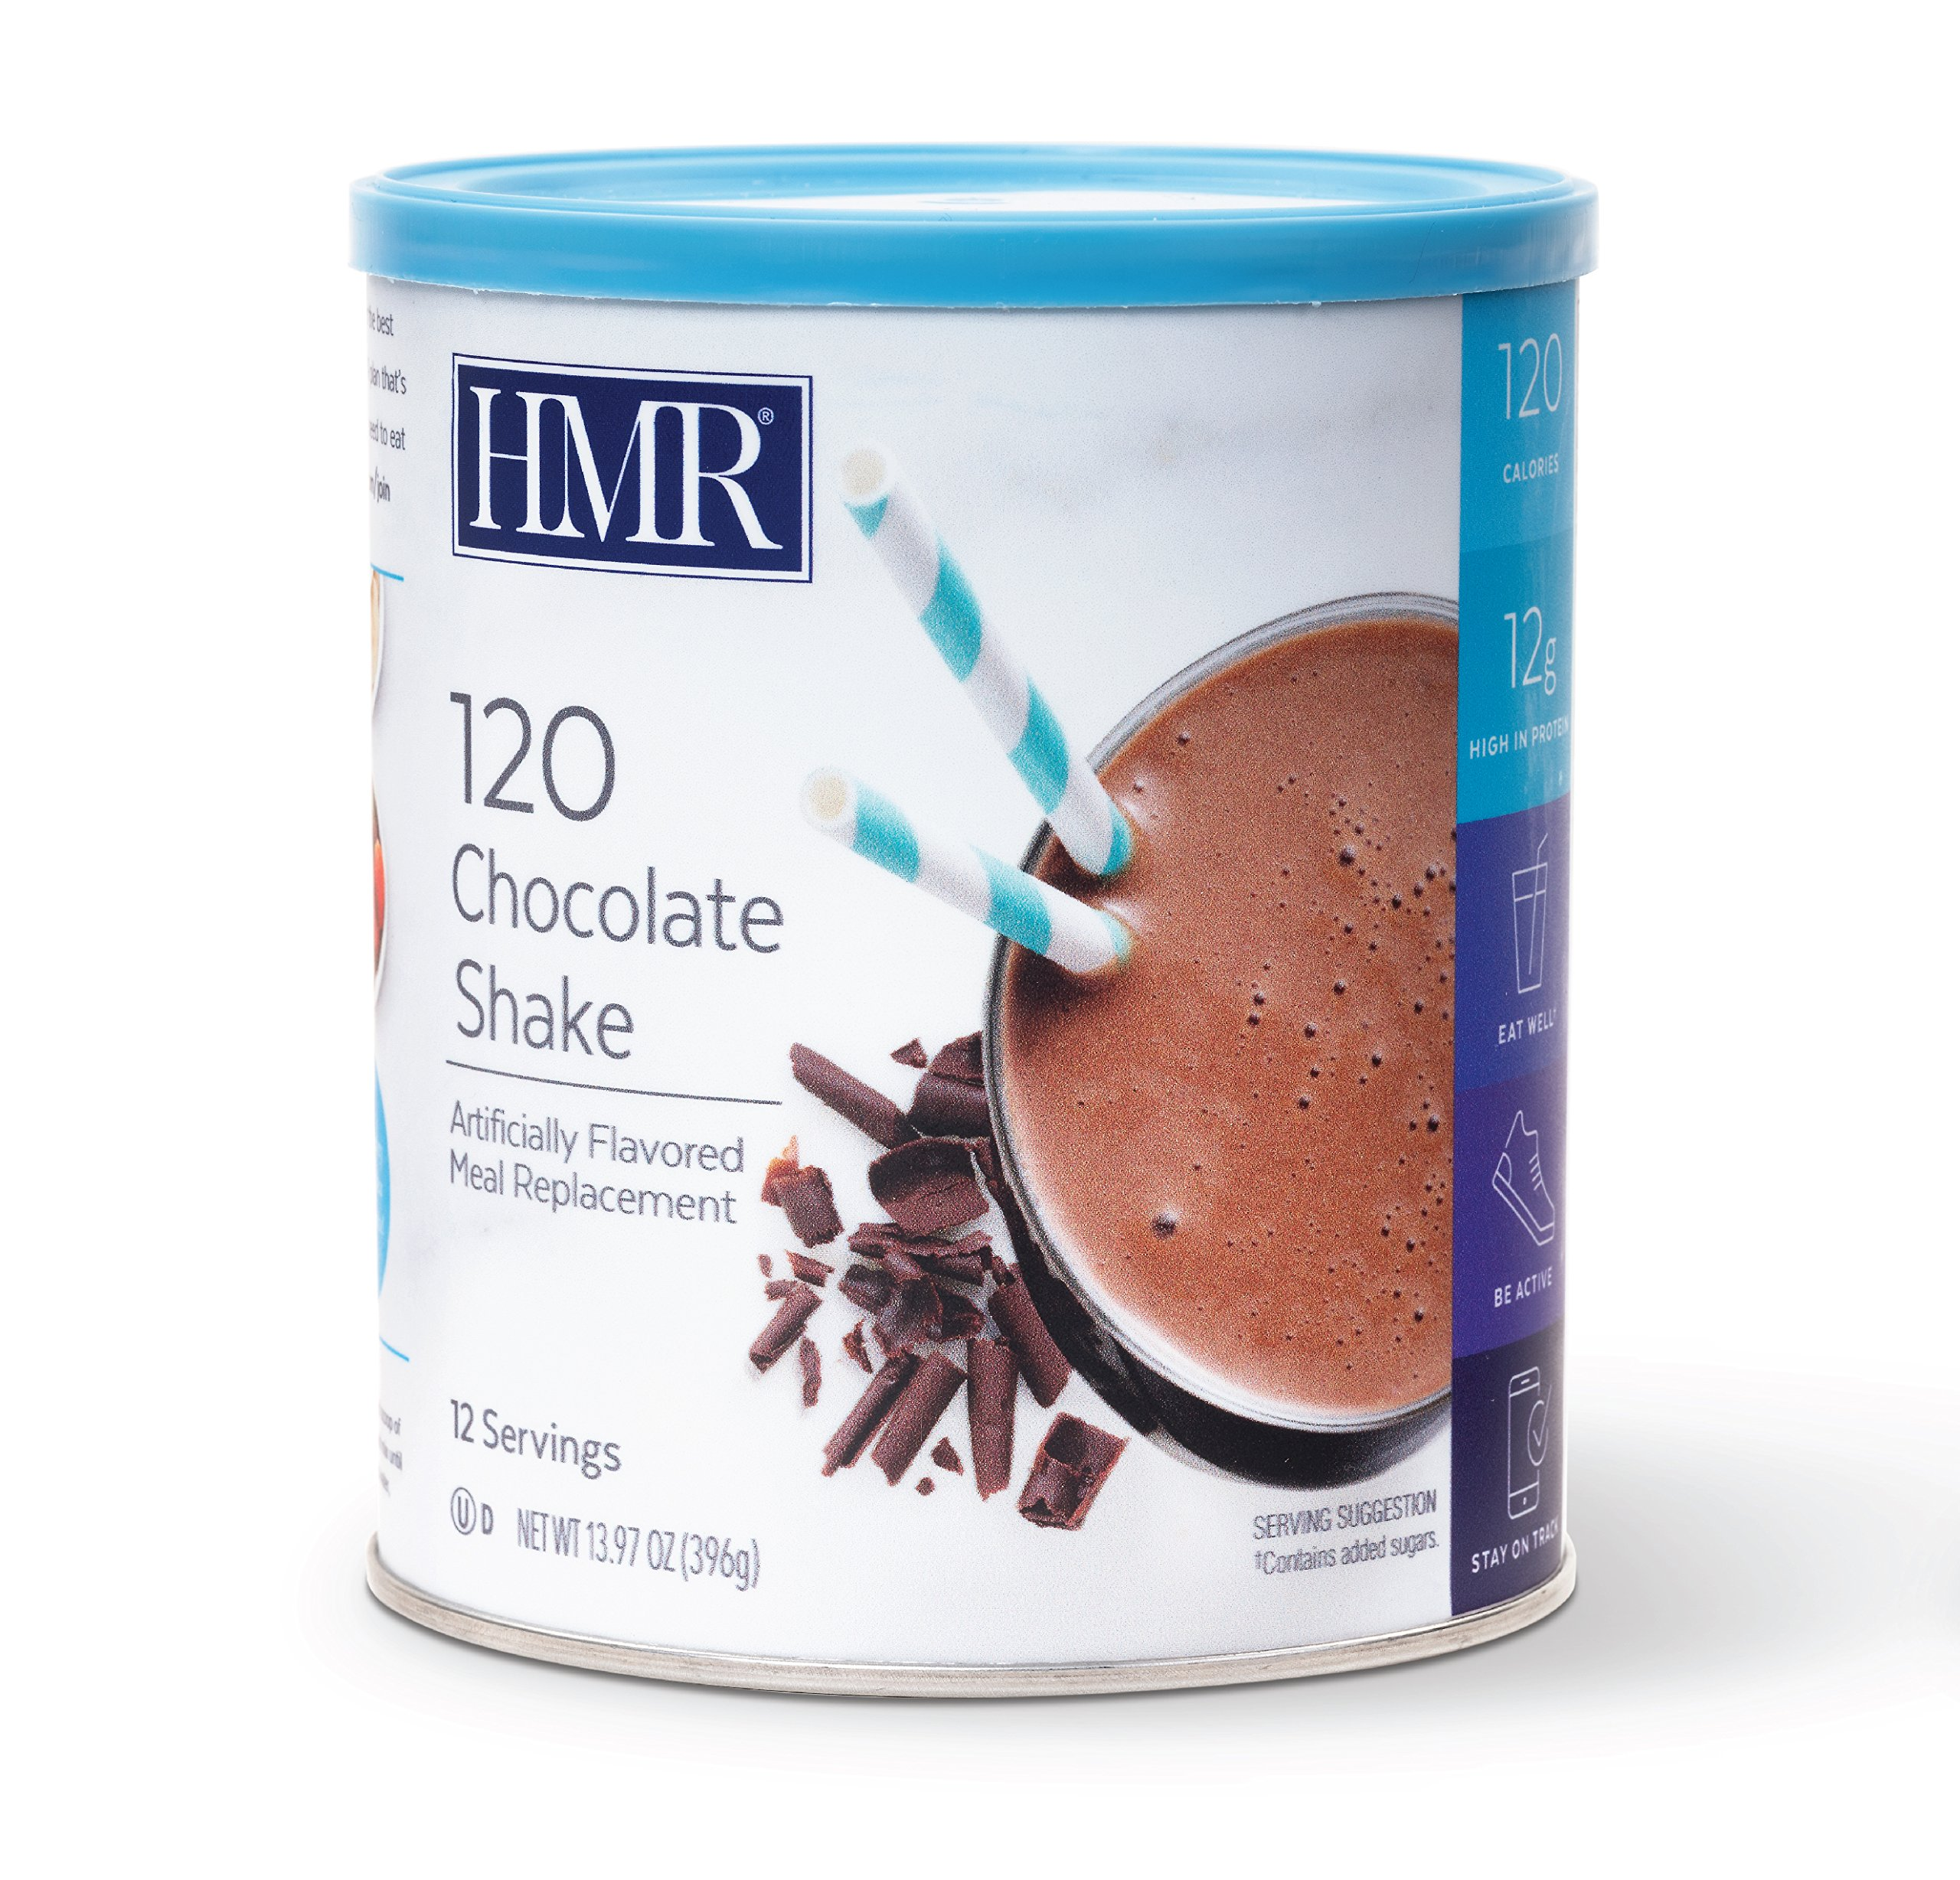 HMR 120 Chocolate Shake, Canister of 12 servings   by HMR